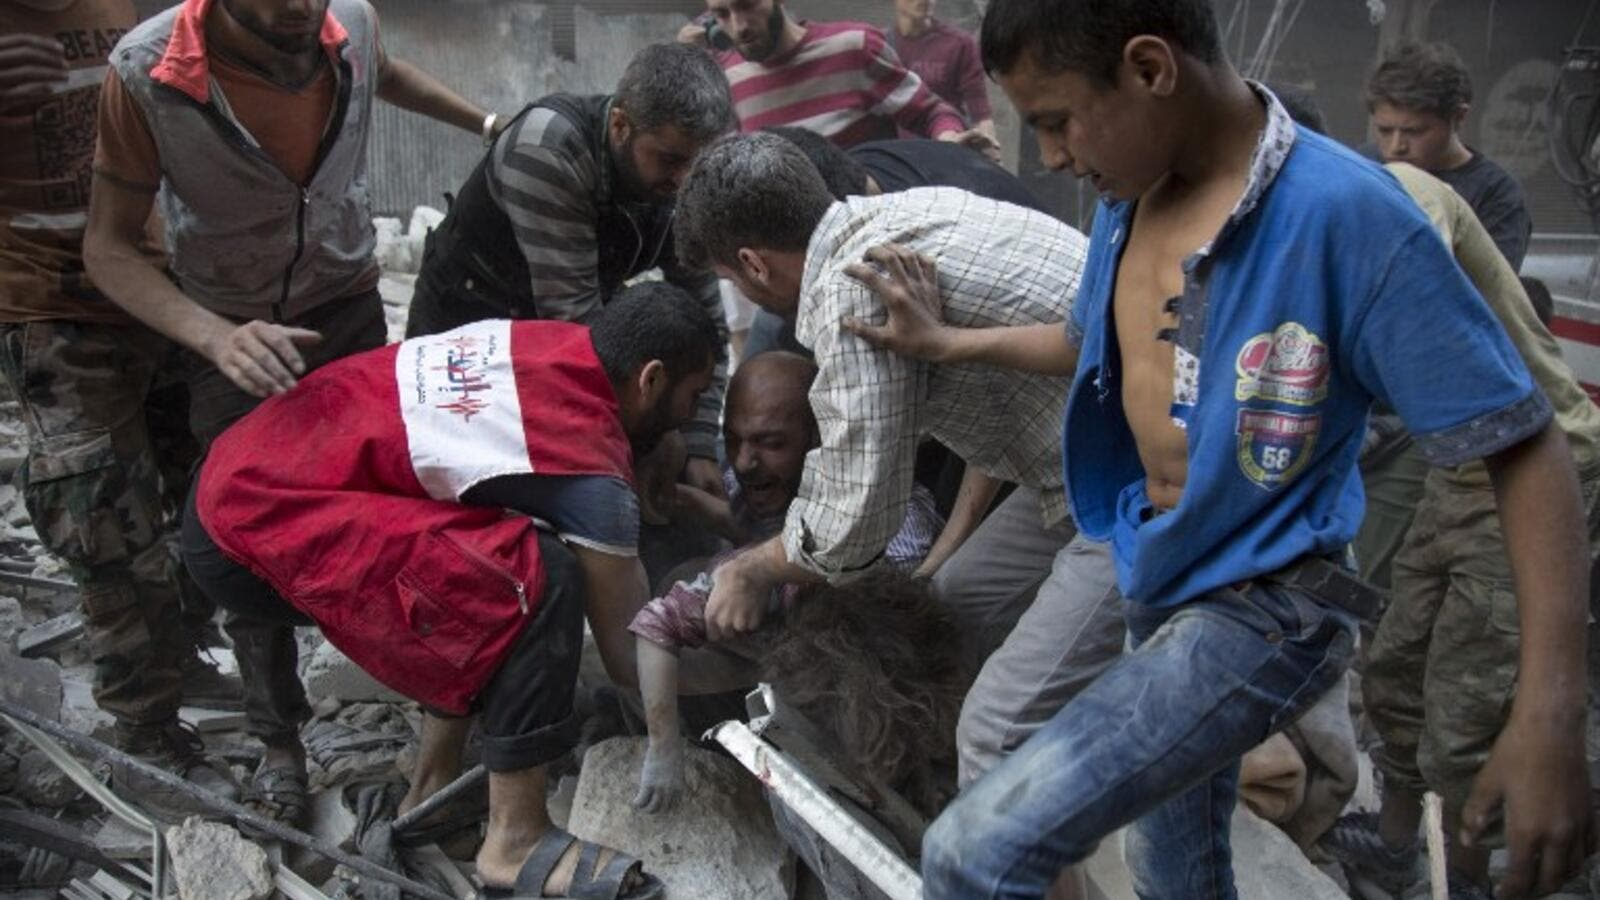 Syrians surround a man as he cries over the body of his child after she was pulled out from the rubble of a budling following government forces air strikes in the rebel held neighbourhood of Al-Shaar in Aleppo on September 27, 2016. (AFP/Karam al-Masri)